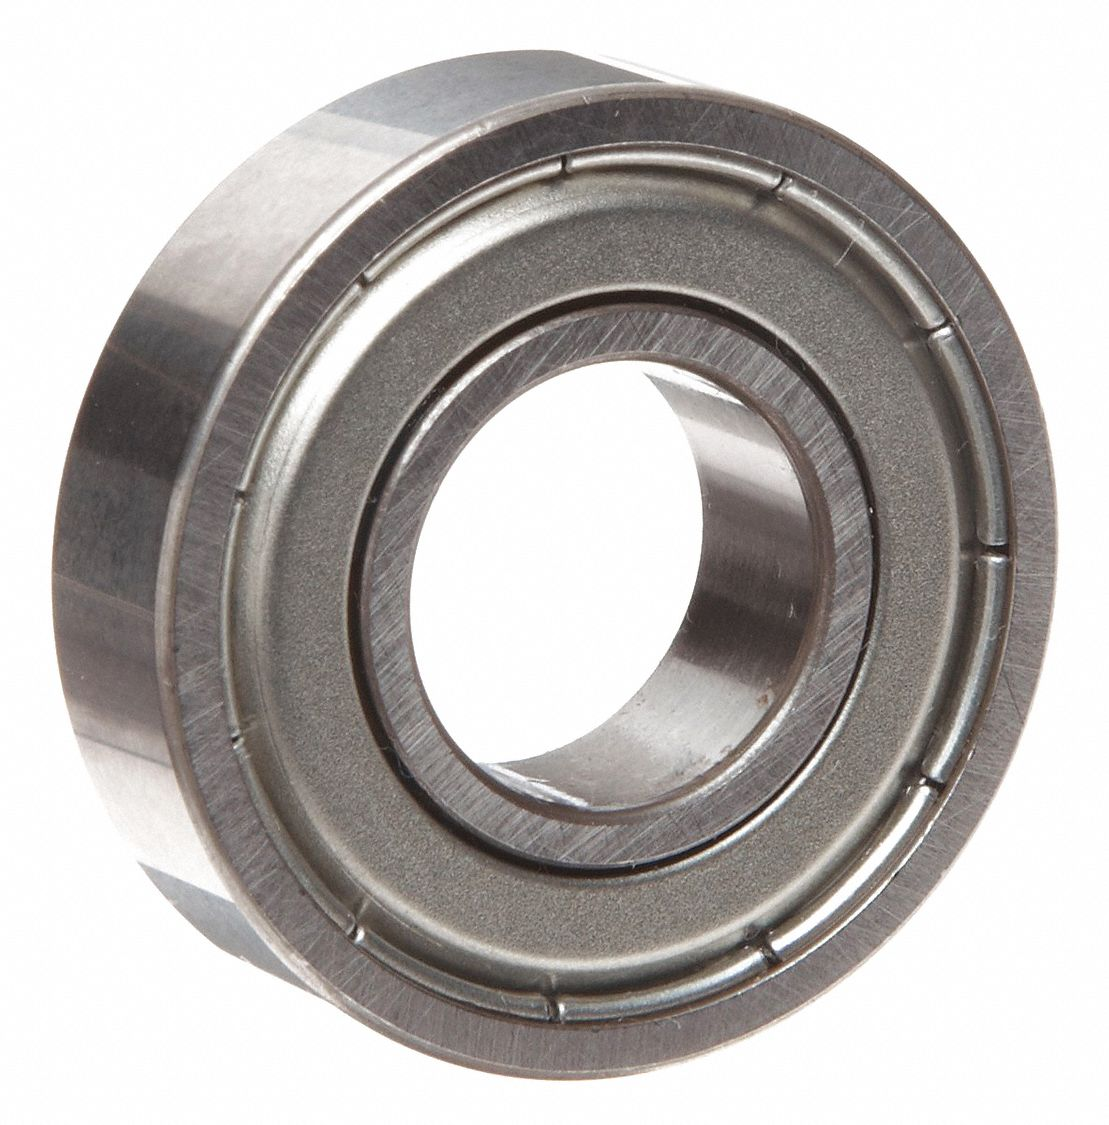 Radial Ball Bearing, Double Shielded, 0.625 in Bore Dia., 1.375 in Outside Dia.